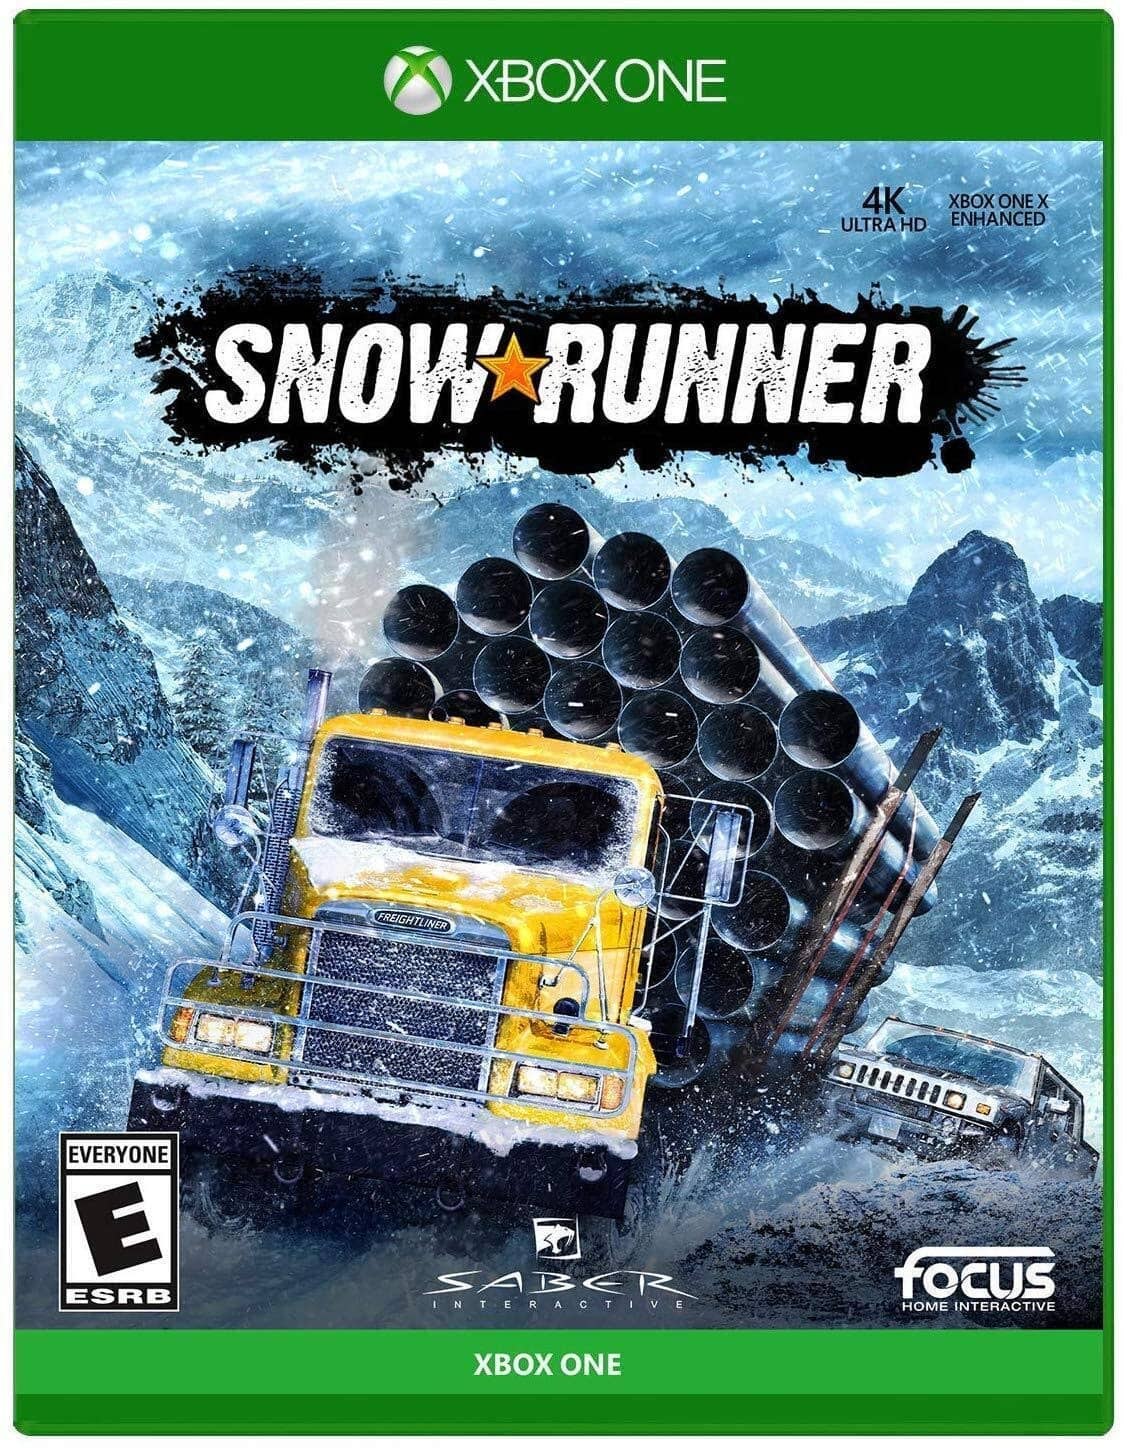 Snowrunner For Xbox One $29.99